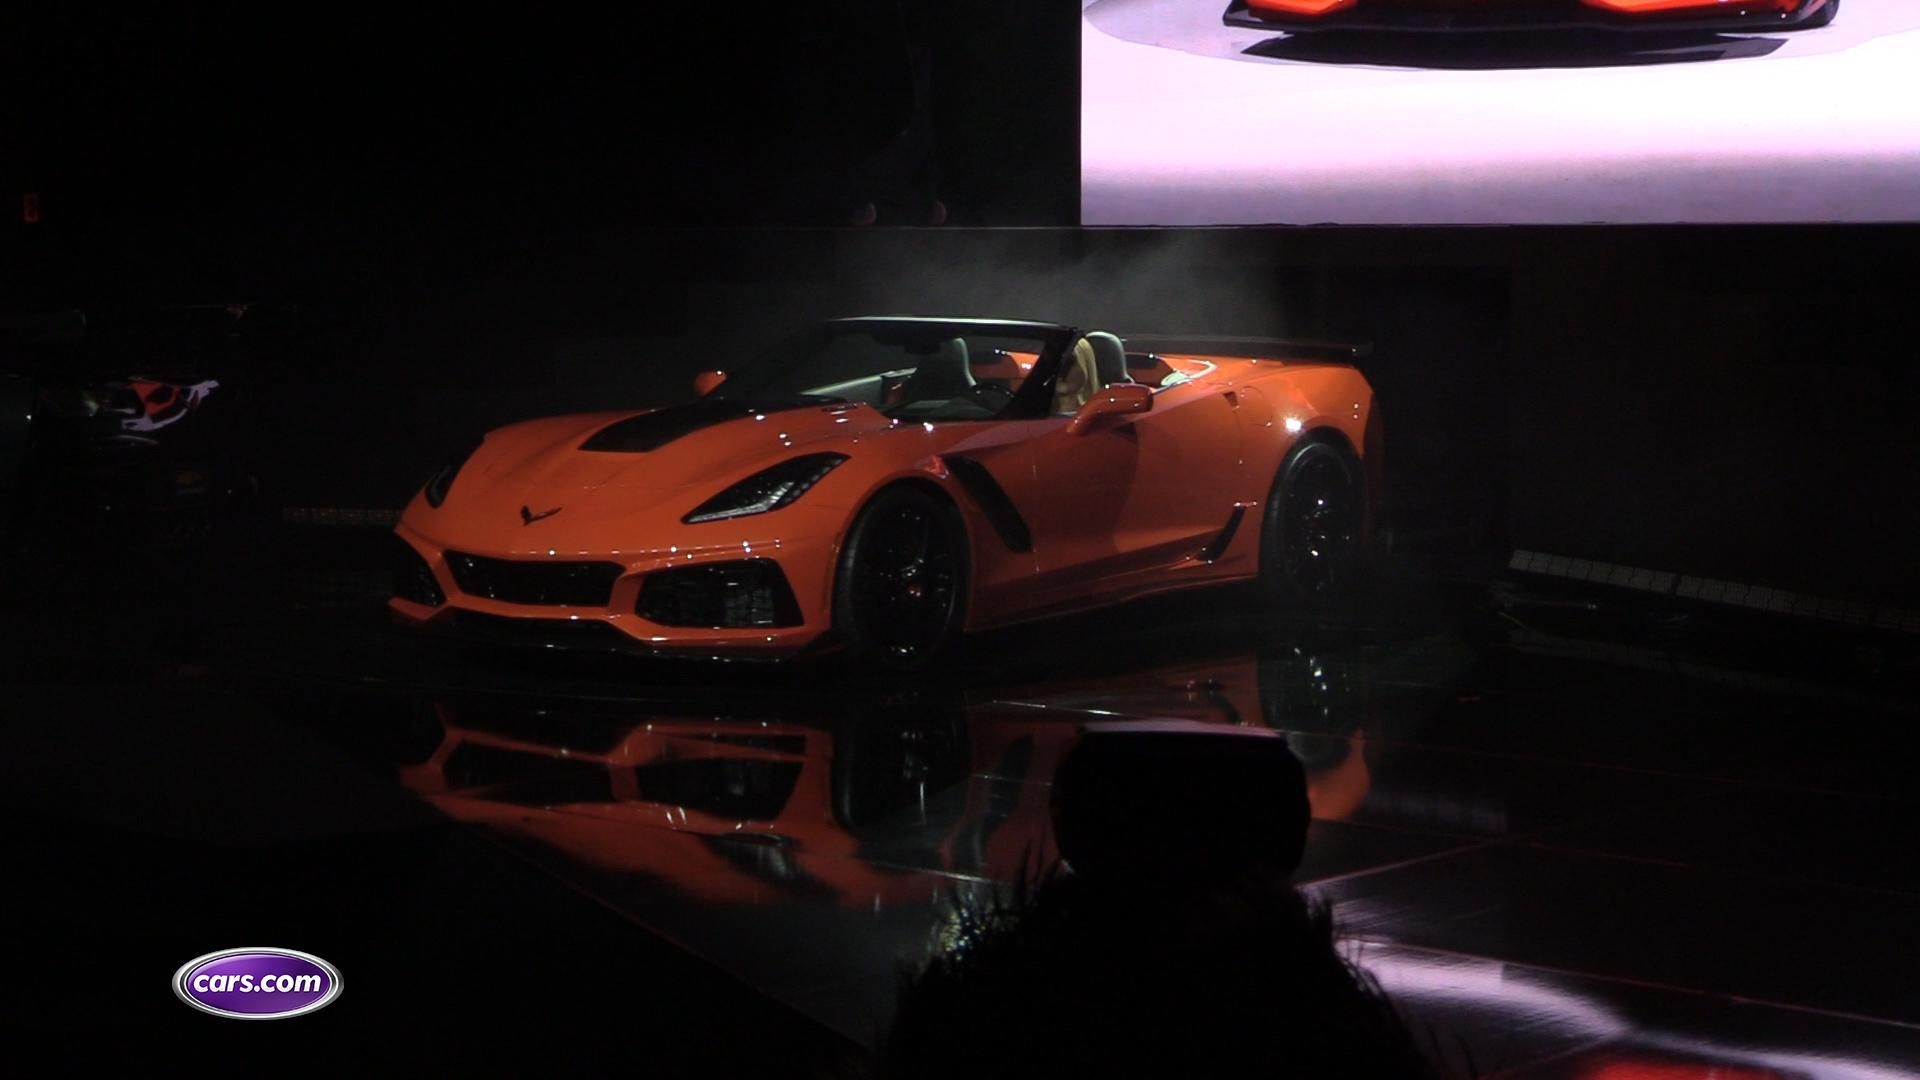 Video: 2019 Chevrolet Corvette ZR1: First Impressions – Cars.com